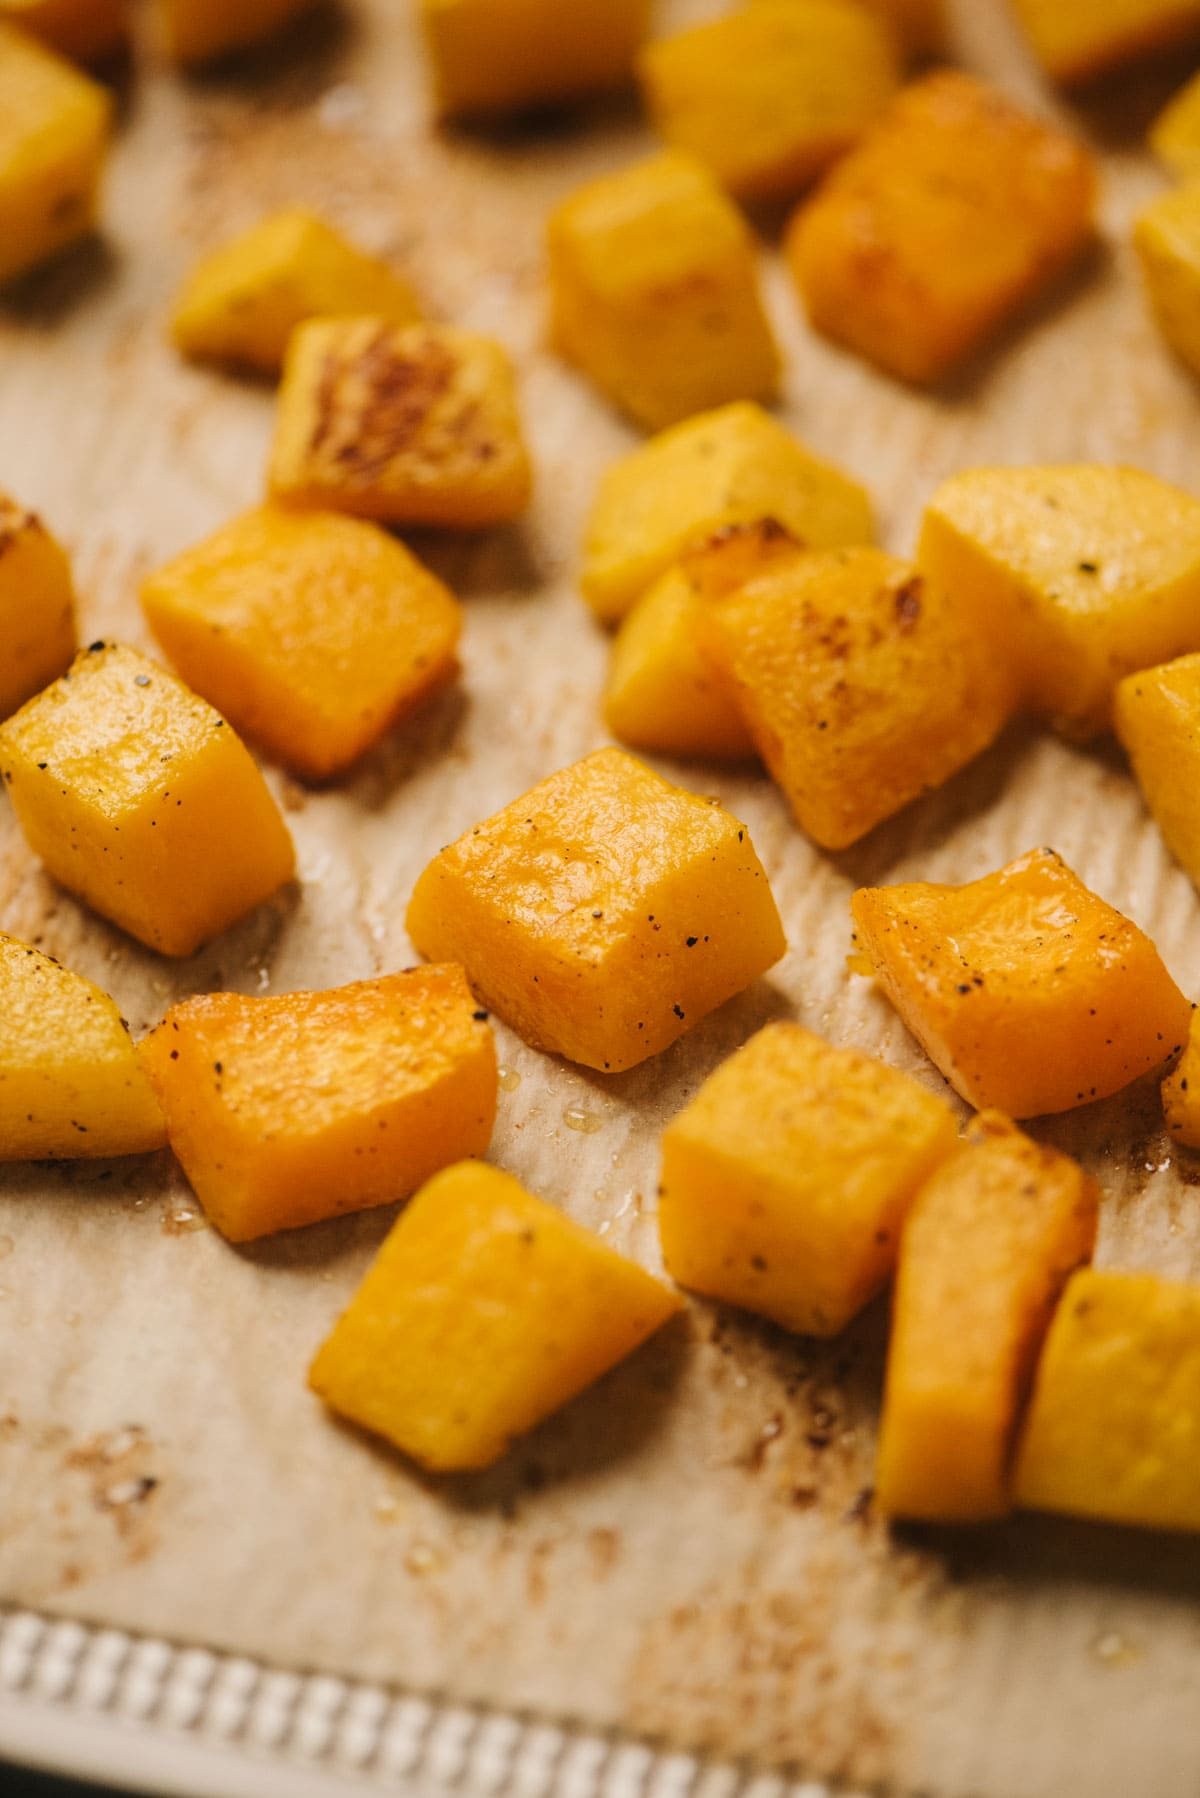 Roasted butternut squash cubes on a parchment lined baking sheet.